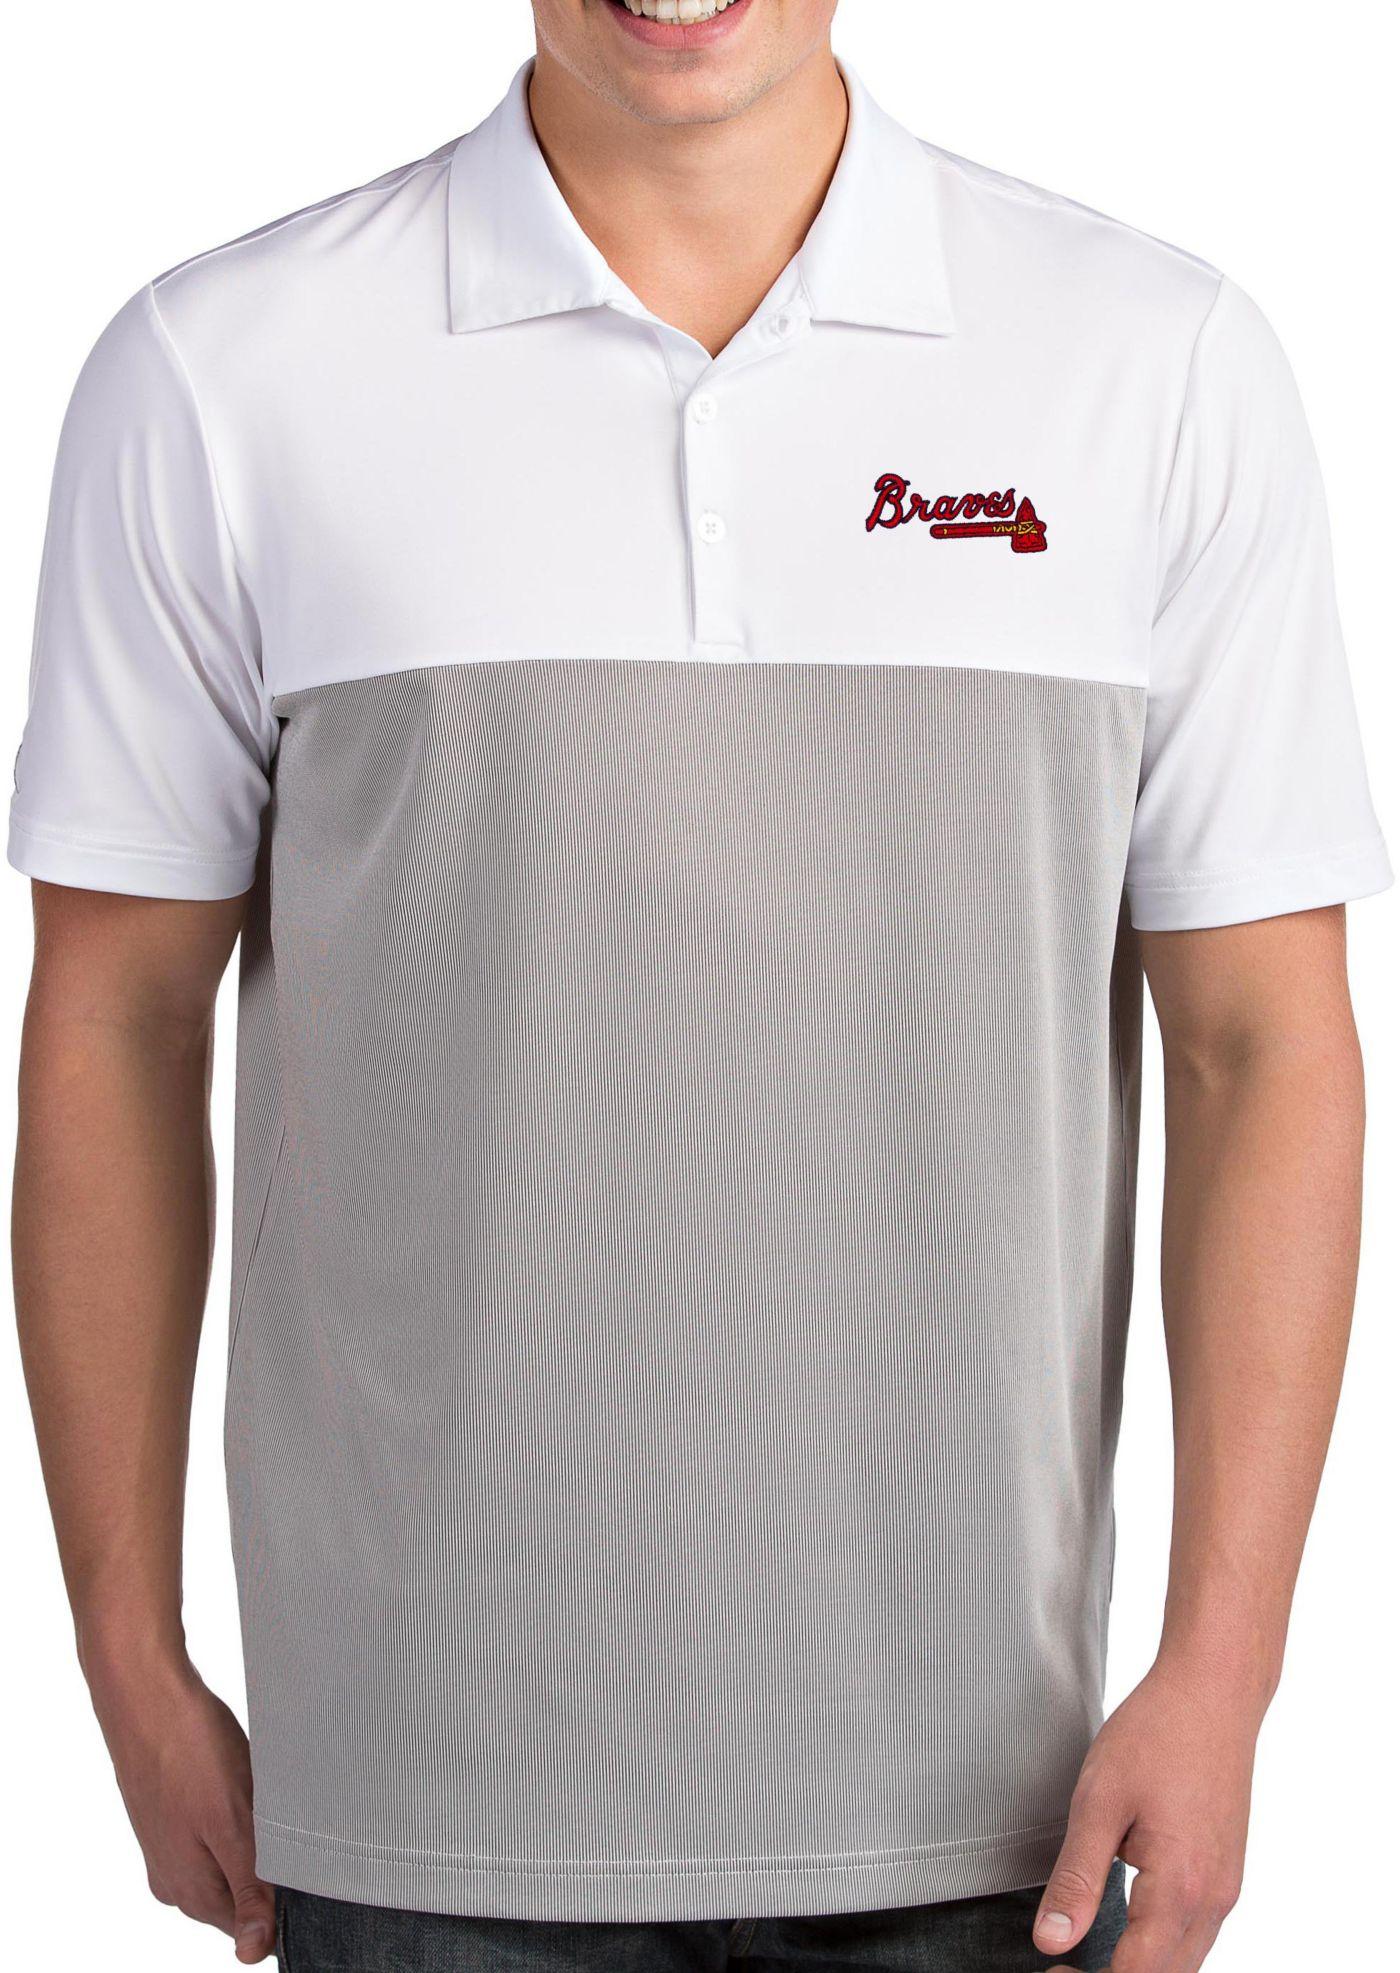 Antigua Men's Atlanta Braves Venture White Performance Polo